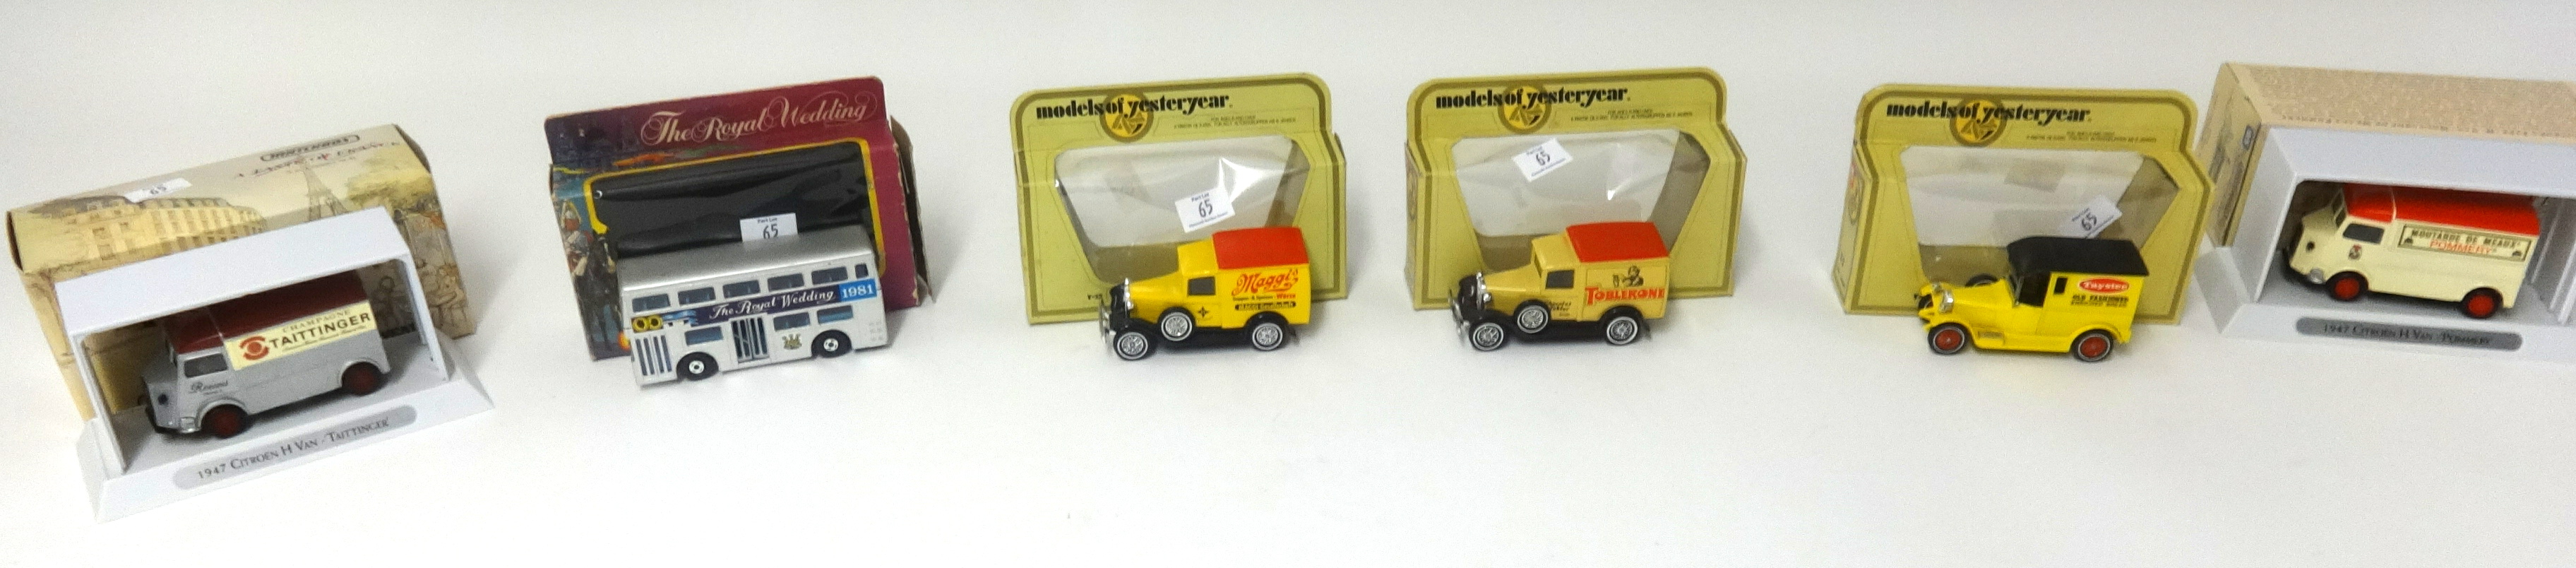 Lot 065 - A mixed lot of Matchbox Collectables Limited Edition, A Taste Of France, Models of Yesteryear and